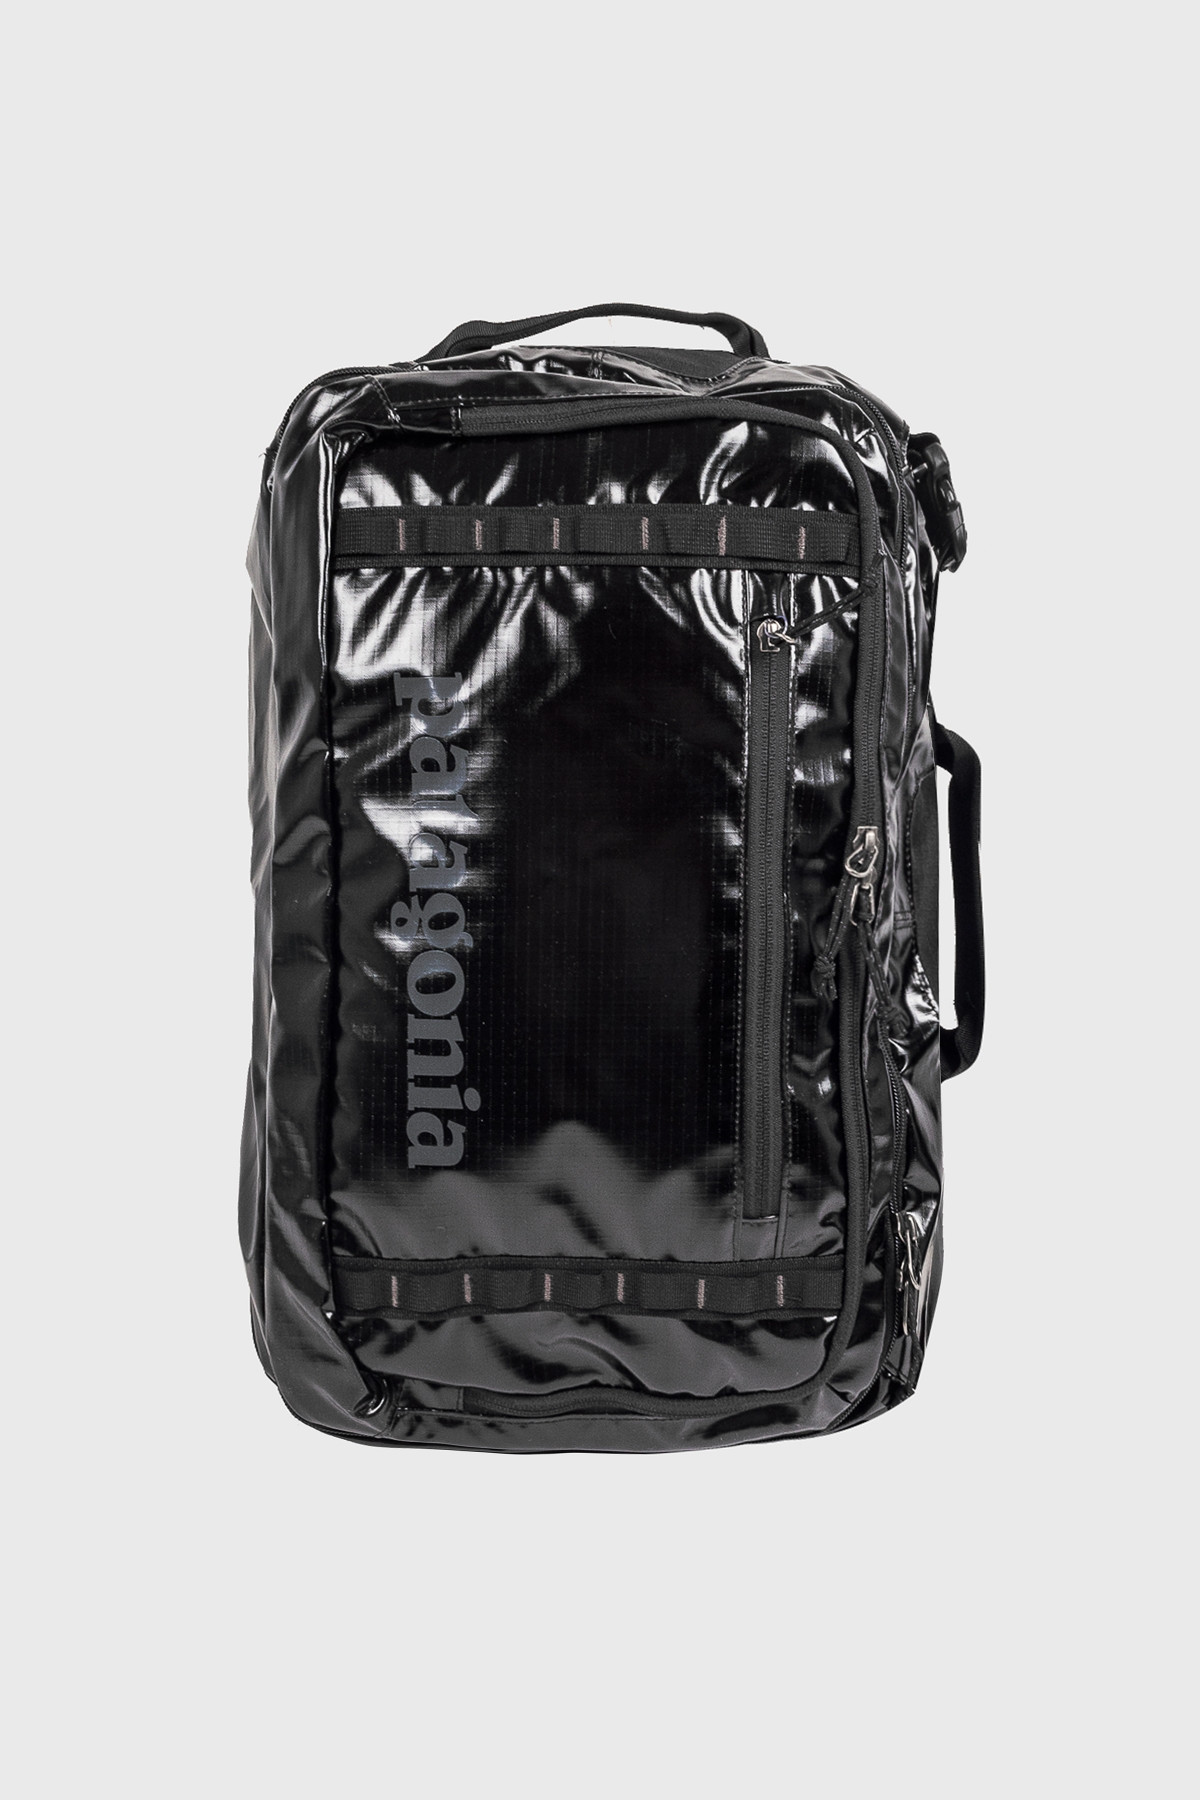 Patagonia - Black Hole® Mini MLC® 26L - Black